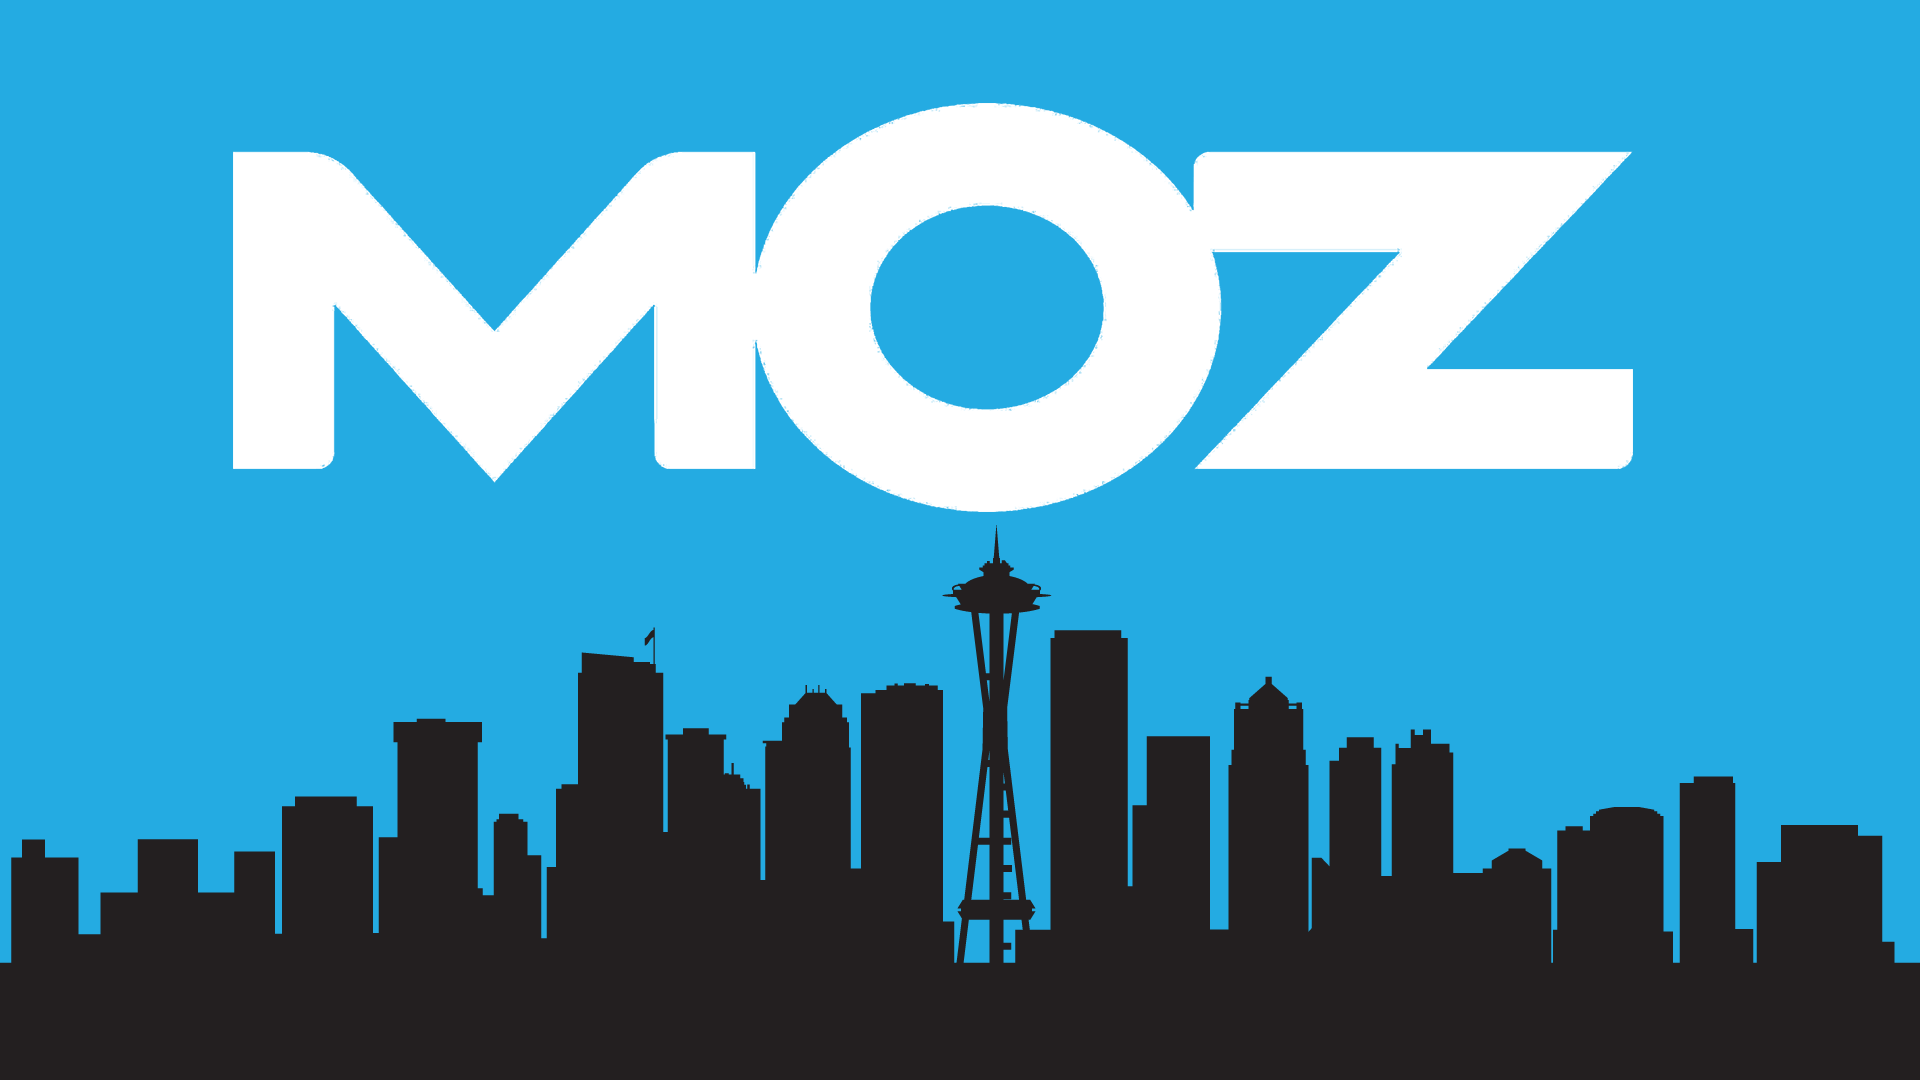 moz-logo-seattle-skyline-ss-1920